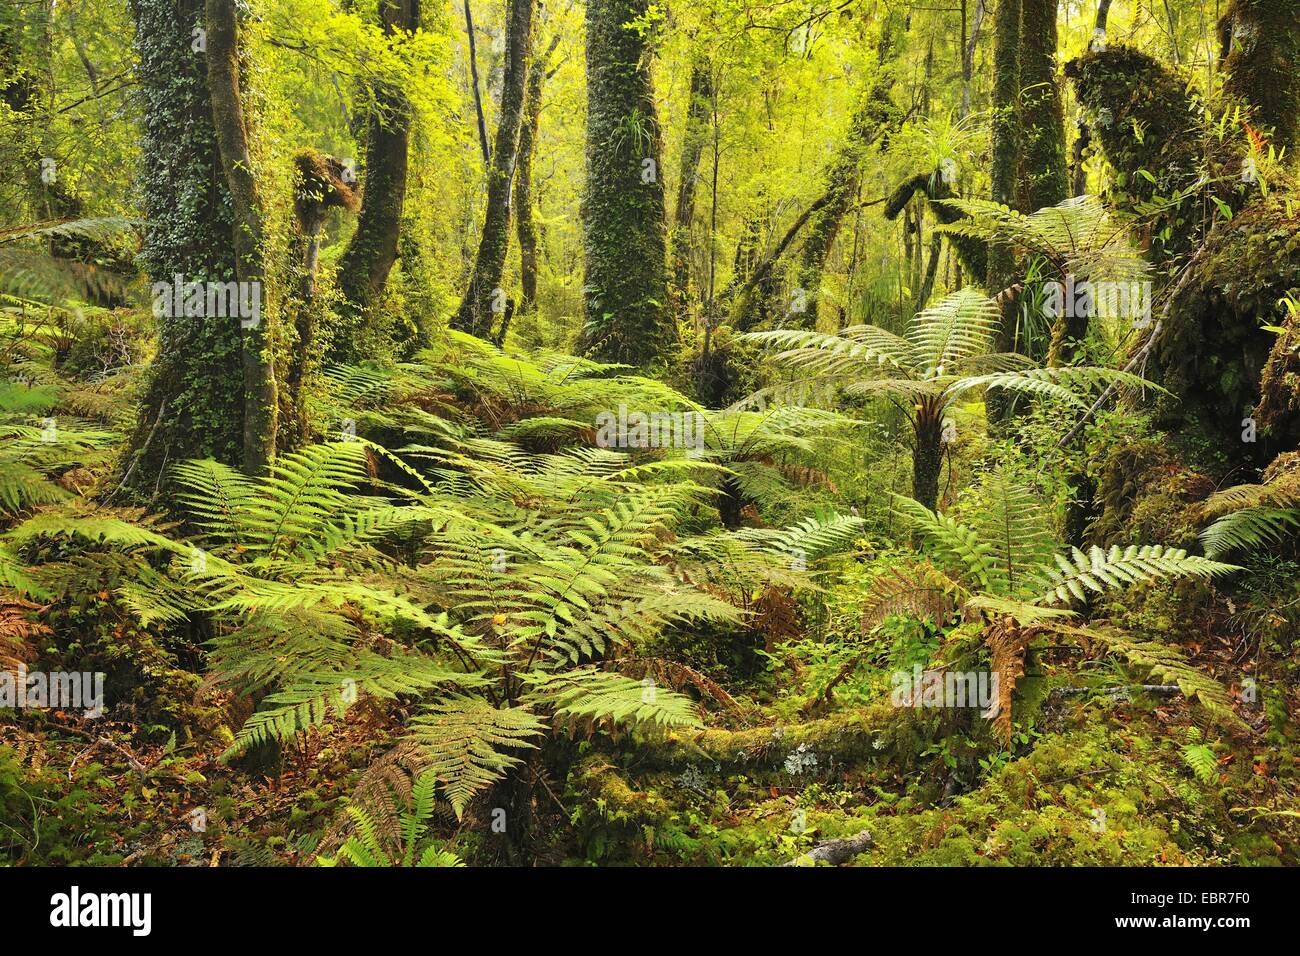 Temperate Rain Forest with Tree Ferns, New Zealand, West Coast, Haast - Stock Image